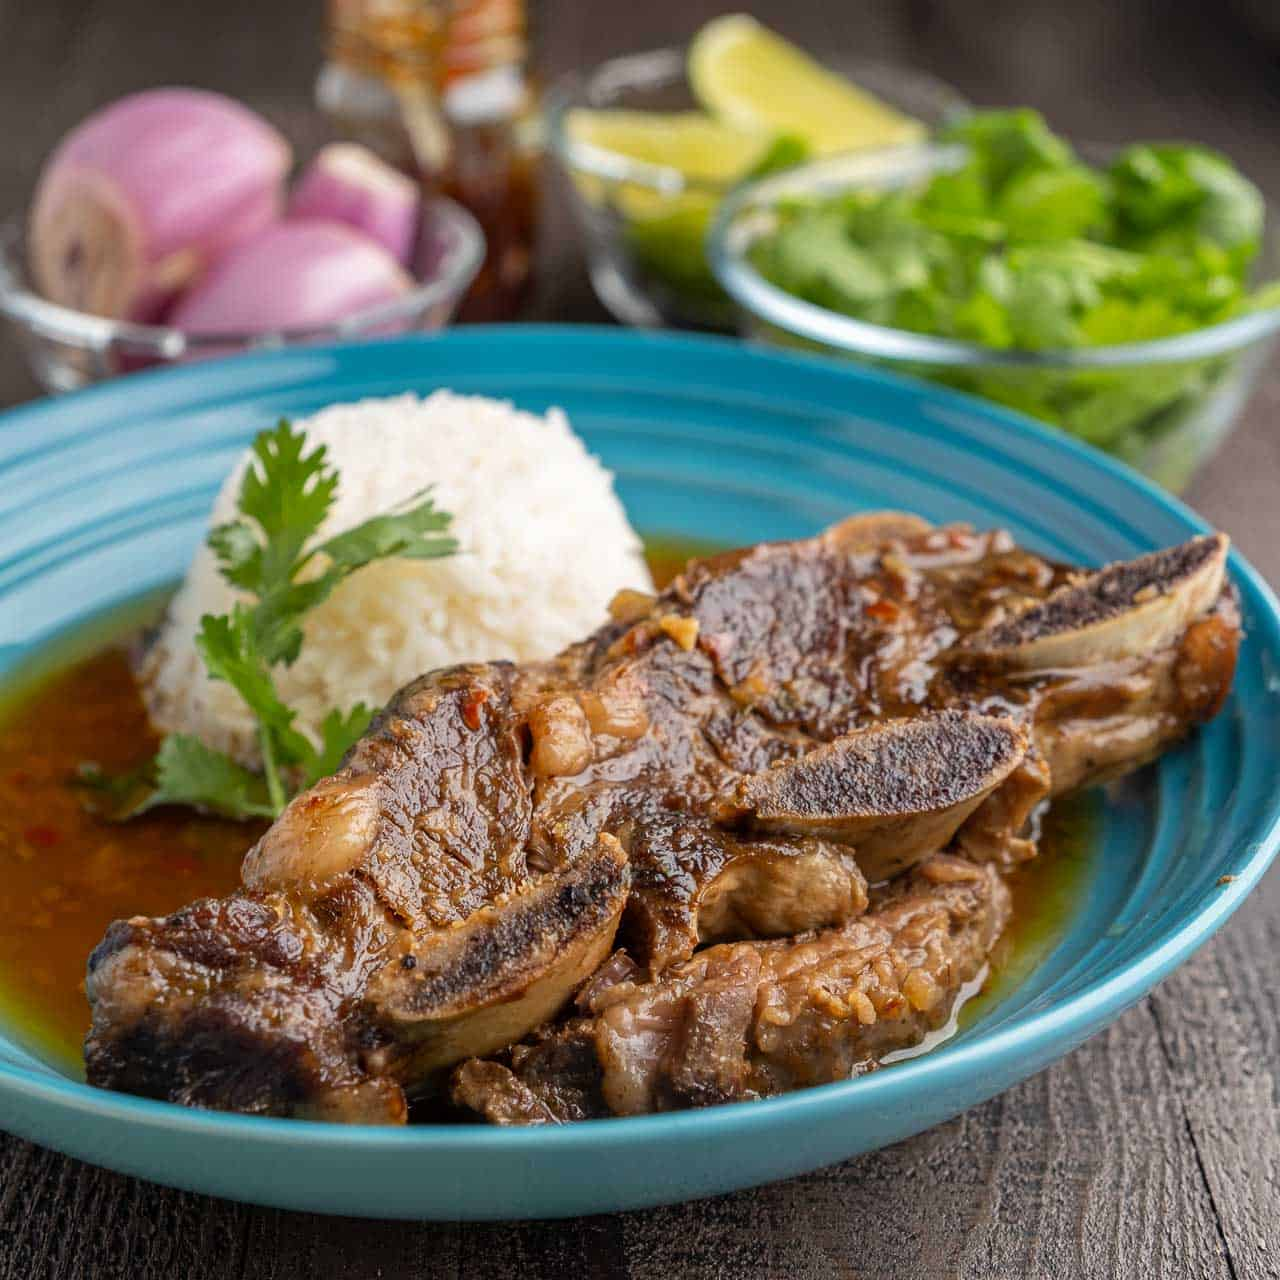 Short ribs with coconut curry sauce in a teal bowl with rice, and bowls of cilantro, shallots, limes, and curry paste in the background